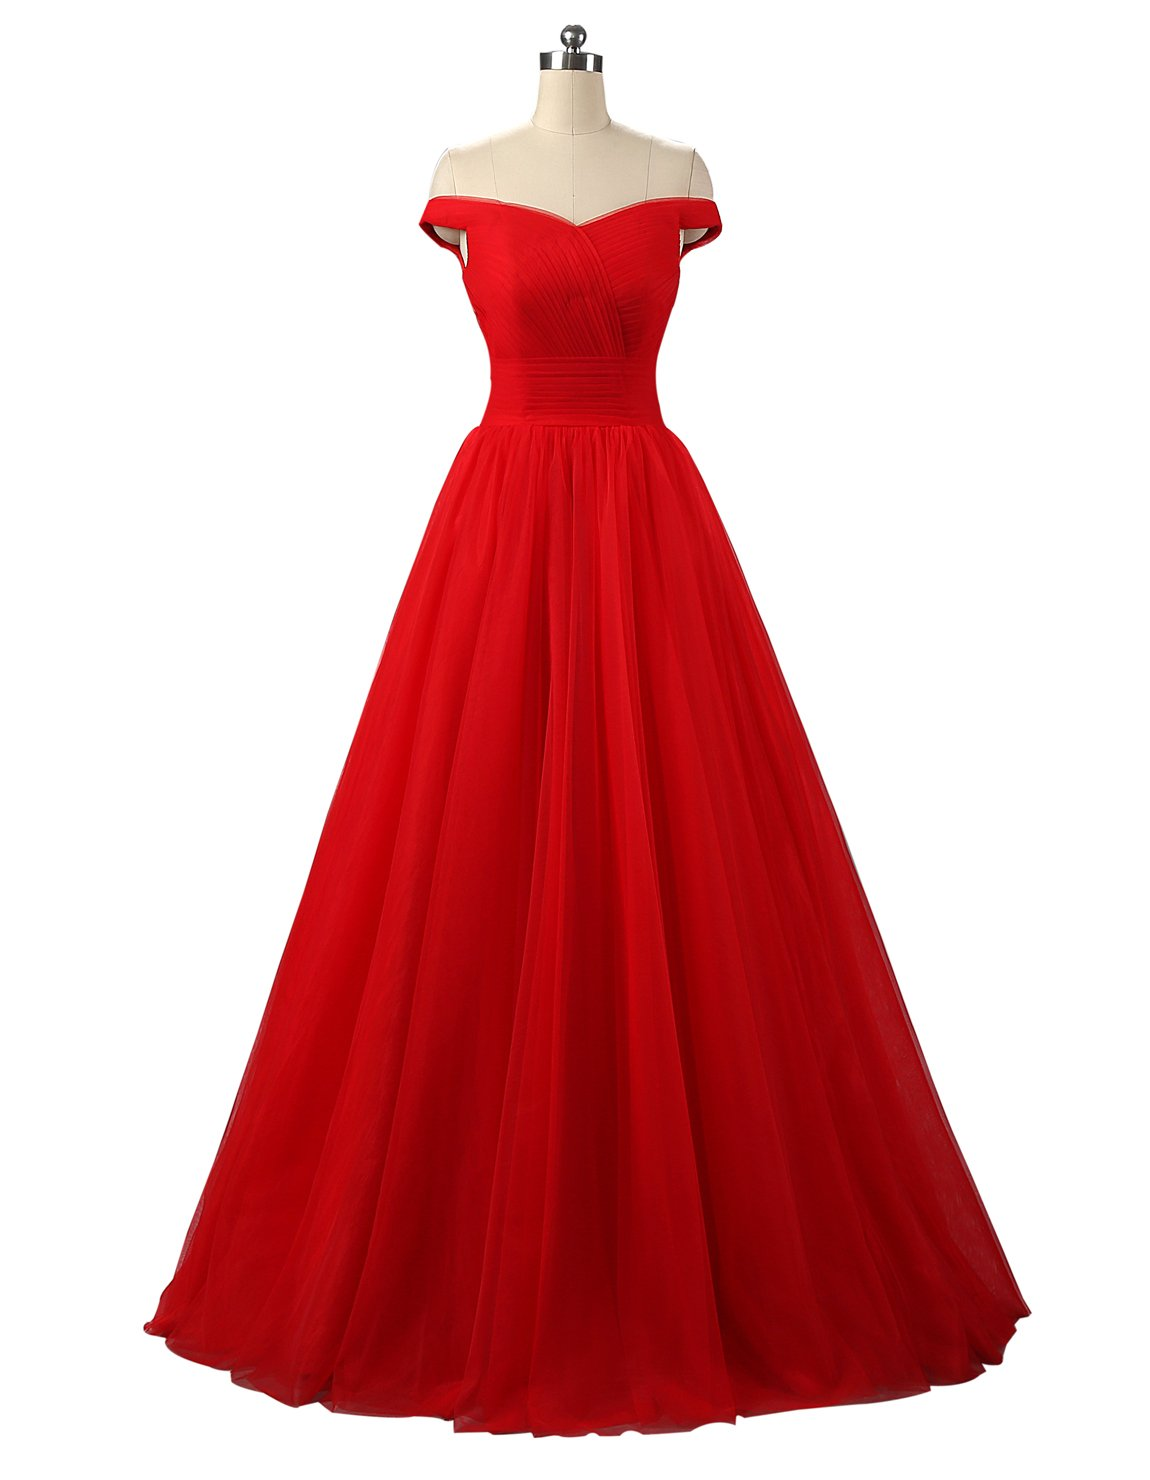 Nina Ding A-line Net Prom Formal Evening Dress Ball Gown NND016RD-US16